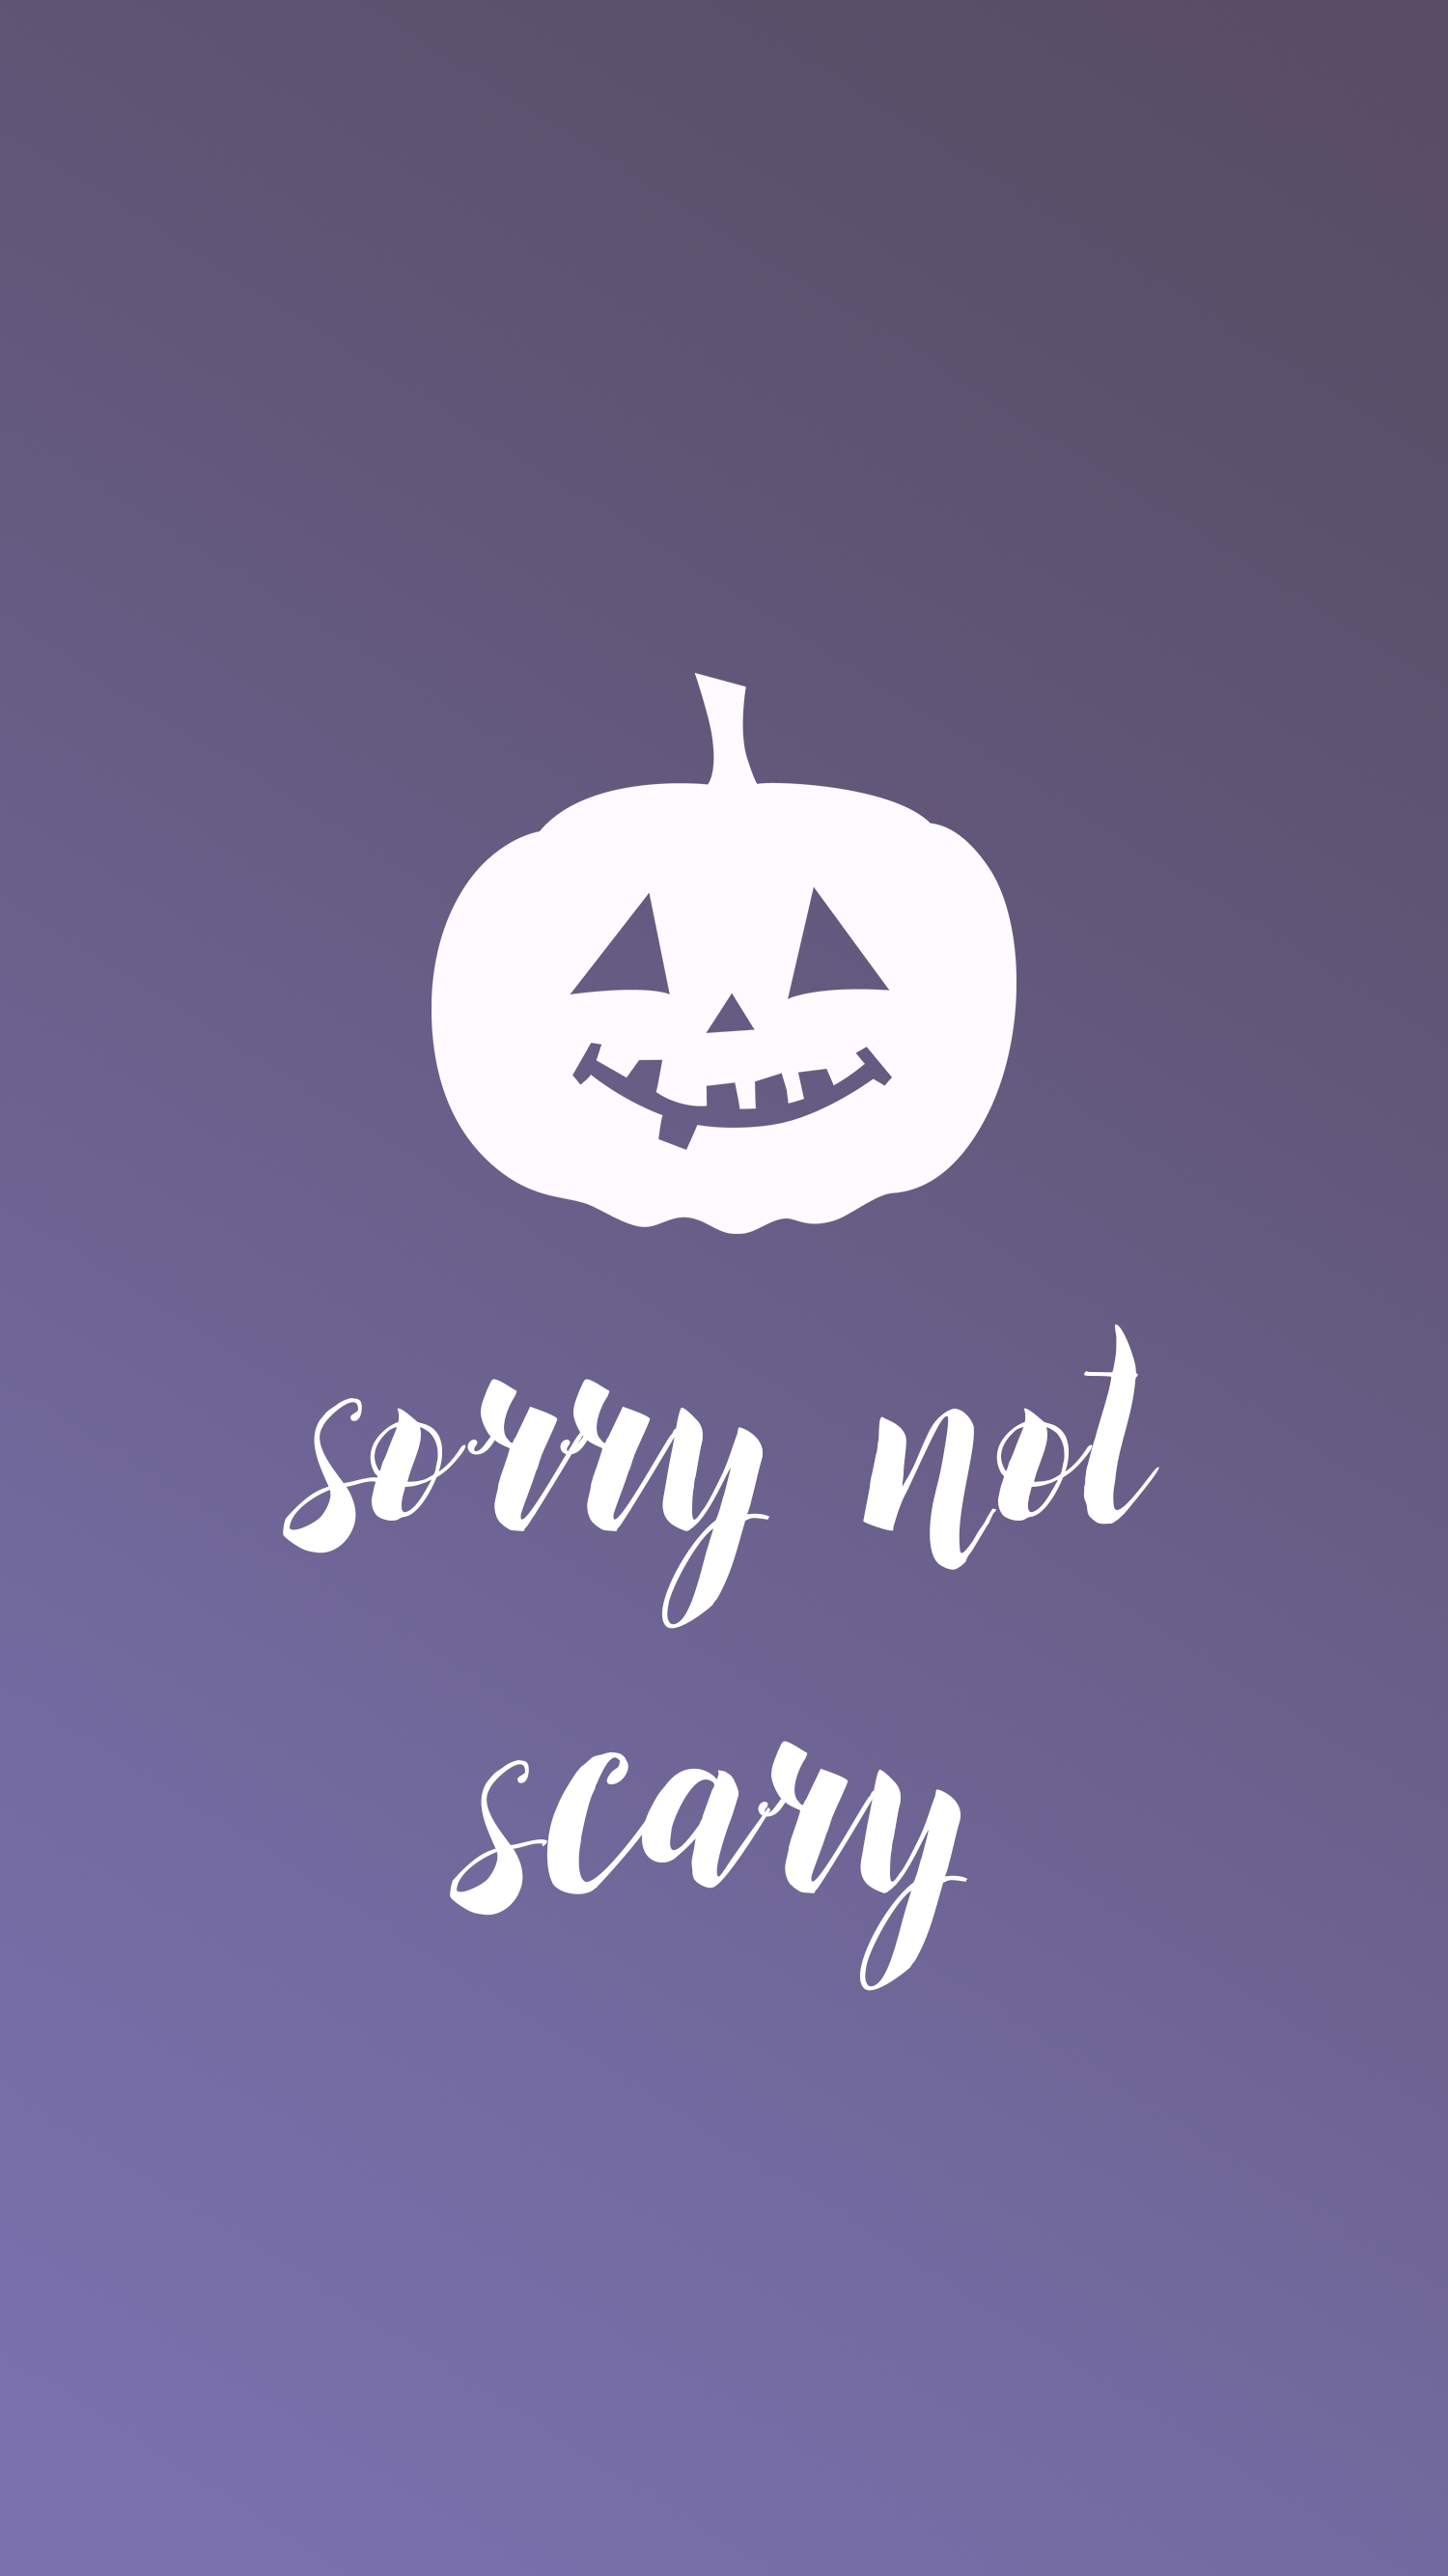 10 Snarky Halloween Phone Wallpapers For Basic Witches With Images Halloween Wallpaper Iphone Cool Wallpapers For Phones Witch Wallpaper